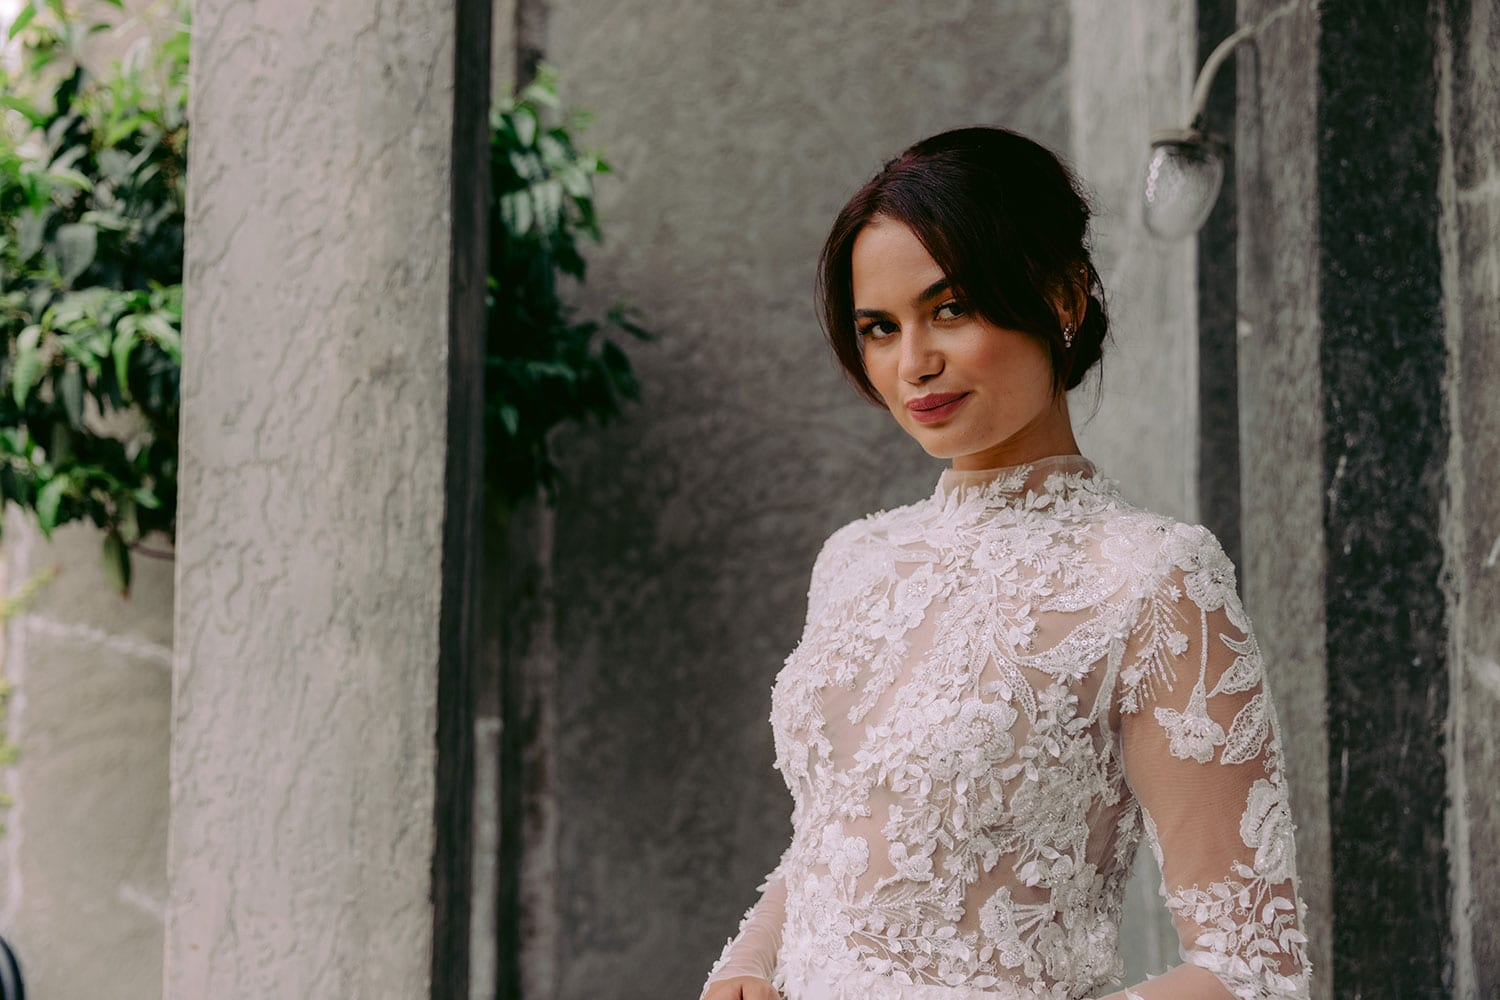 Moana Wedding gown from Vinka Design - Spectacular wedding dress perfect for the modern bride who still wants a classic spark! 3D lace embroidery complemented by a high neckline, fitted sleeves, and stunning low back into a flare train. Model wearing gown hand on hip showing top half of dress lace detail.